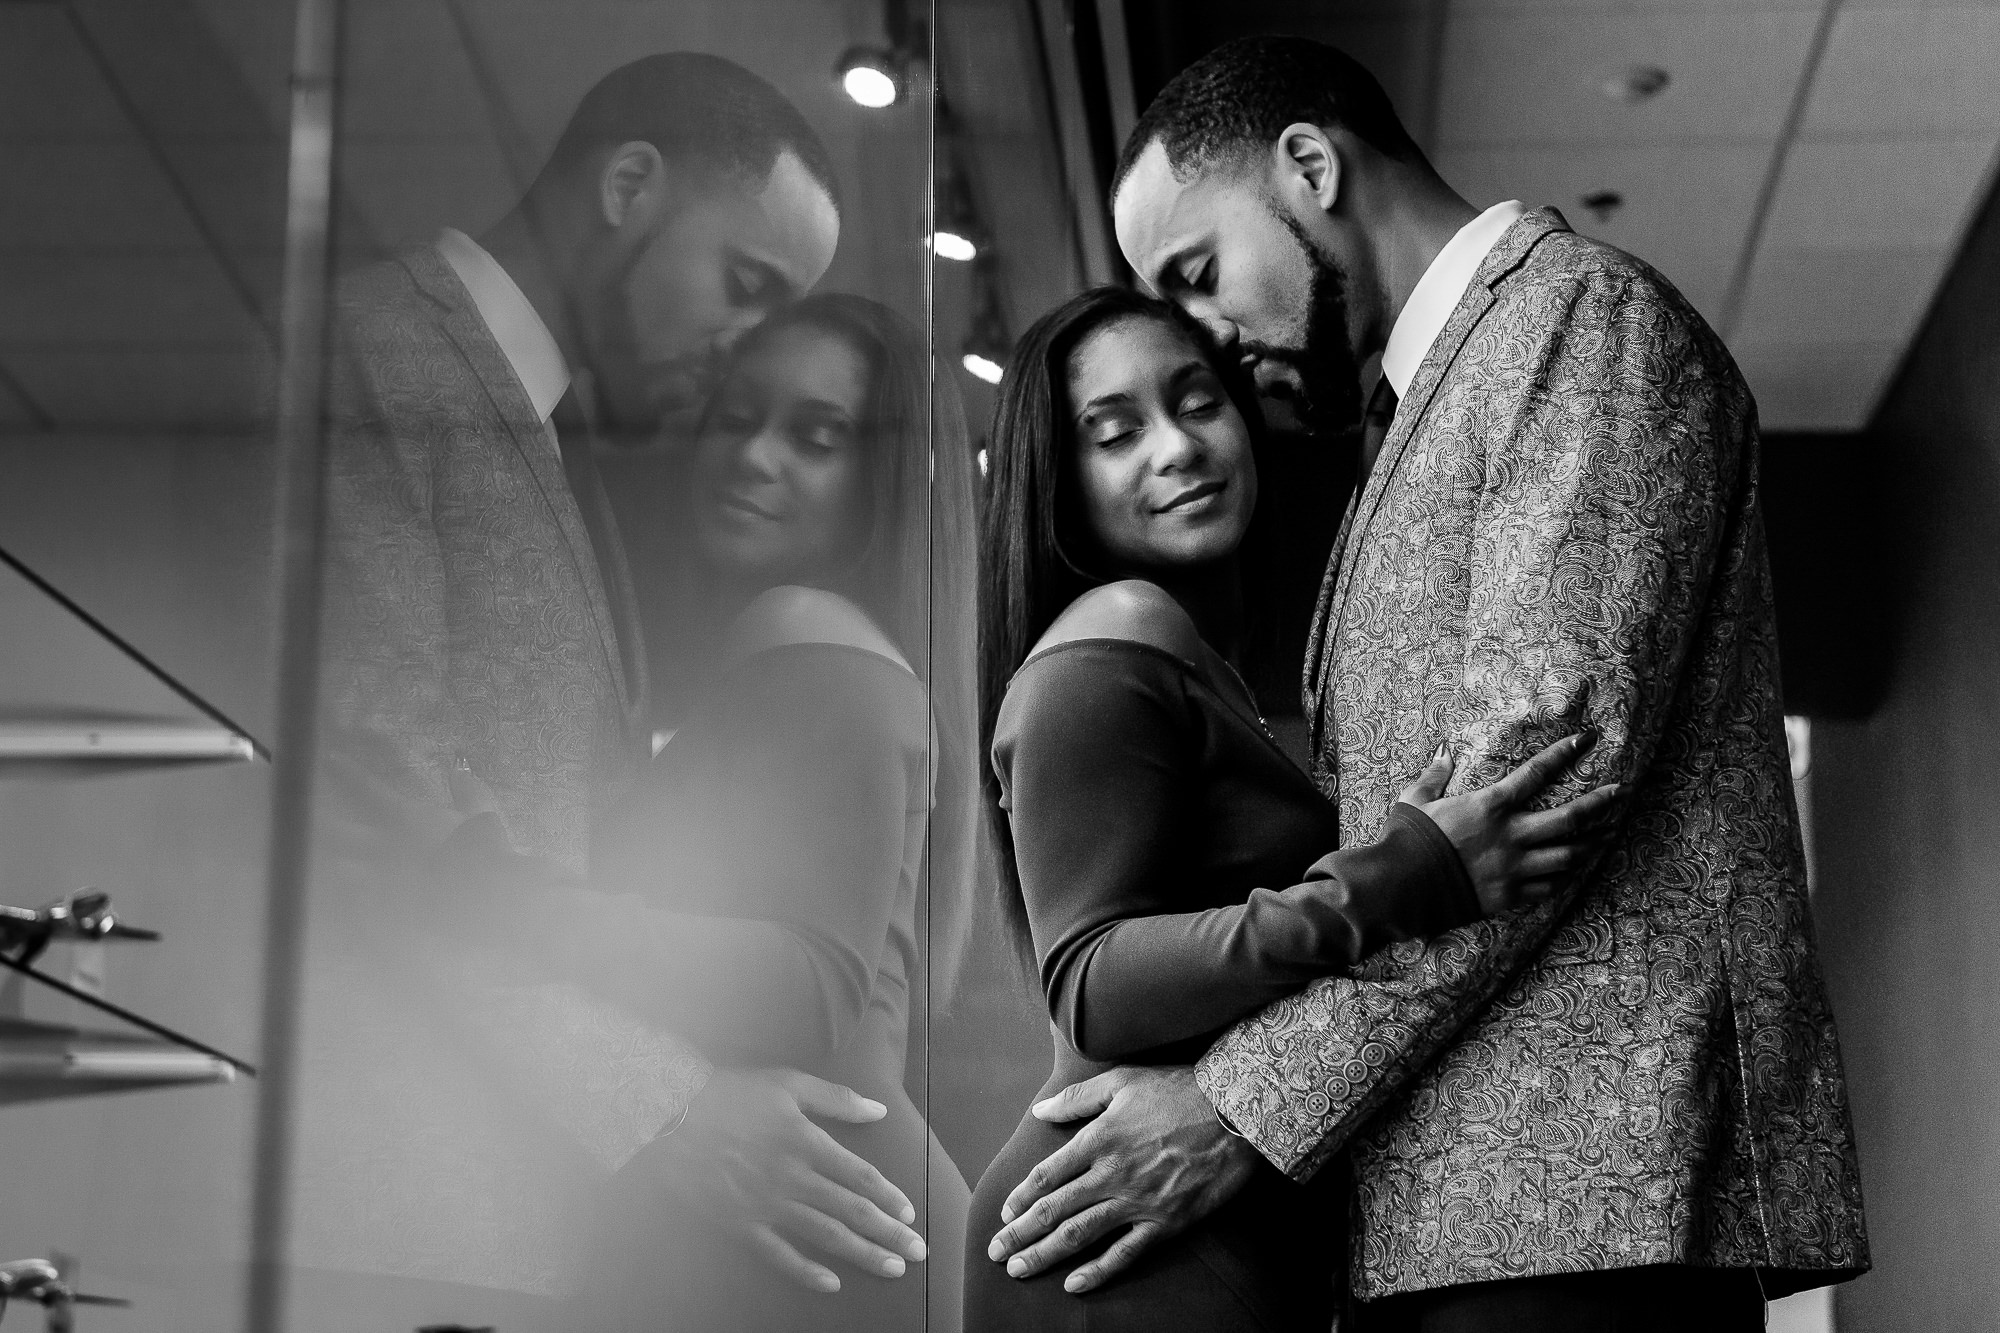 014-christopher-jason-studios-atlanta-georgia-delta-museum-engagement-session-african-american-couple-embraces-with-reflection.jpg